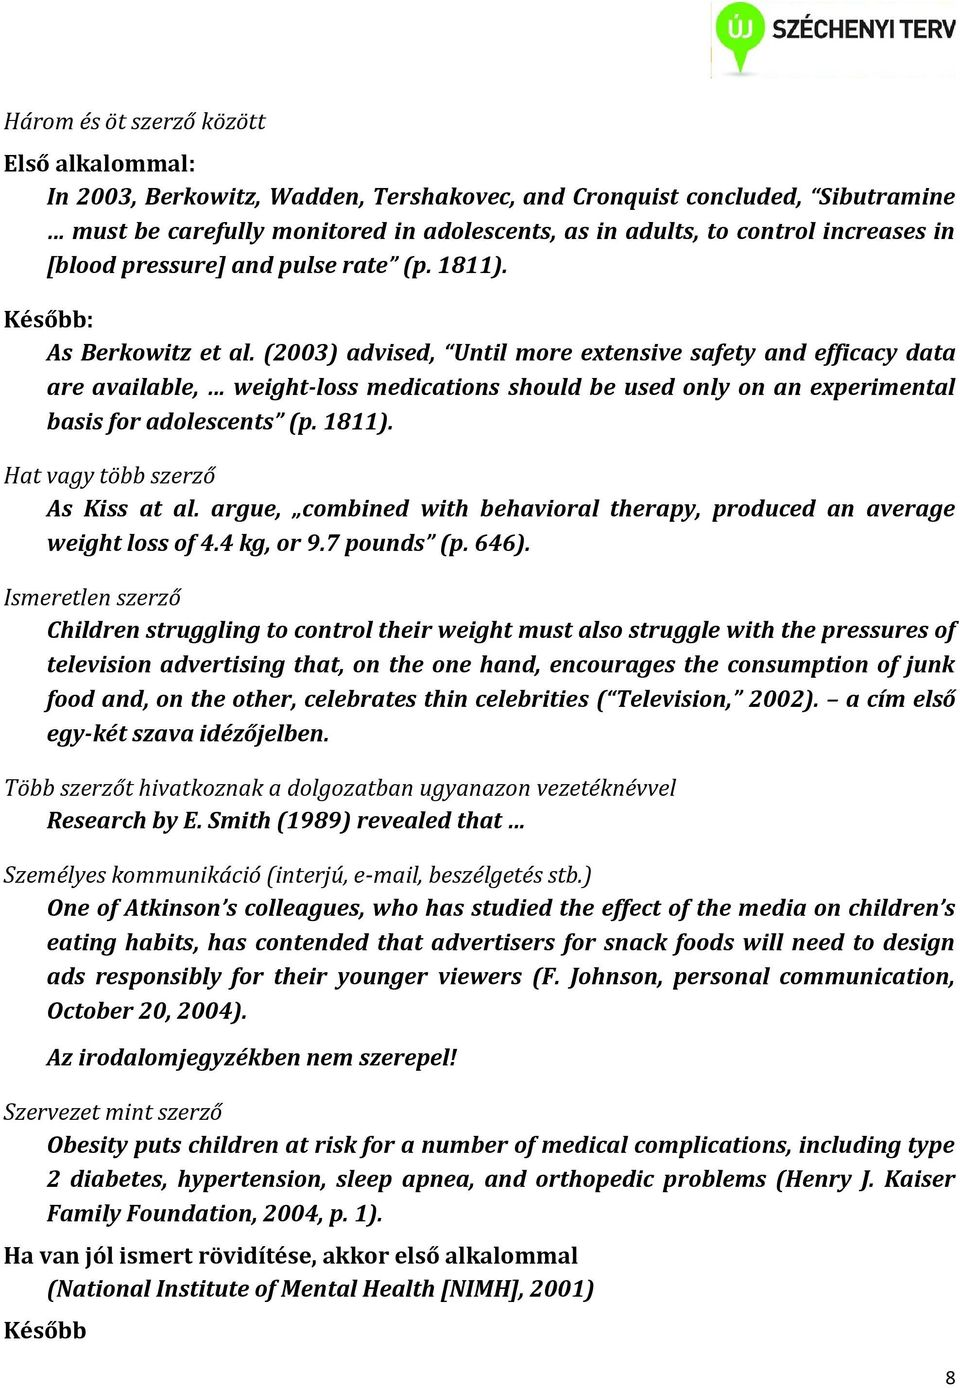 (2003) advised, Until more extensive safety and efficacy data are available, weight-loss medications should be used only on an experimental basis for adolescents (p. 1811).